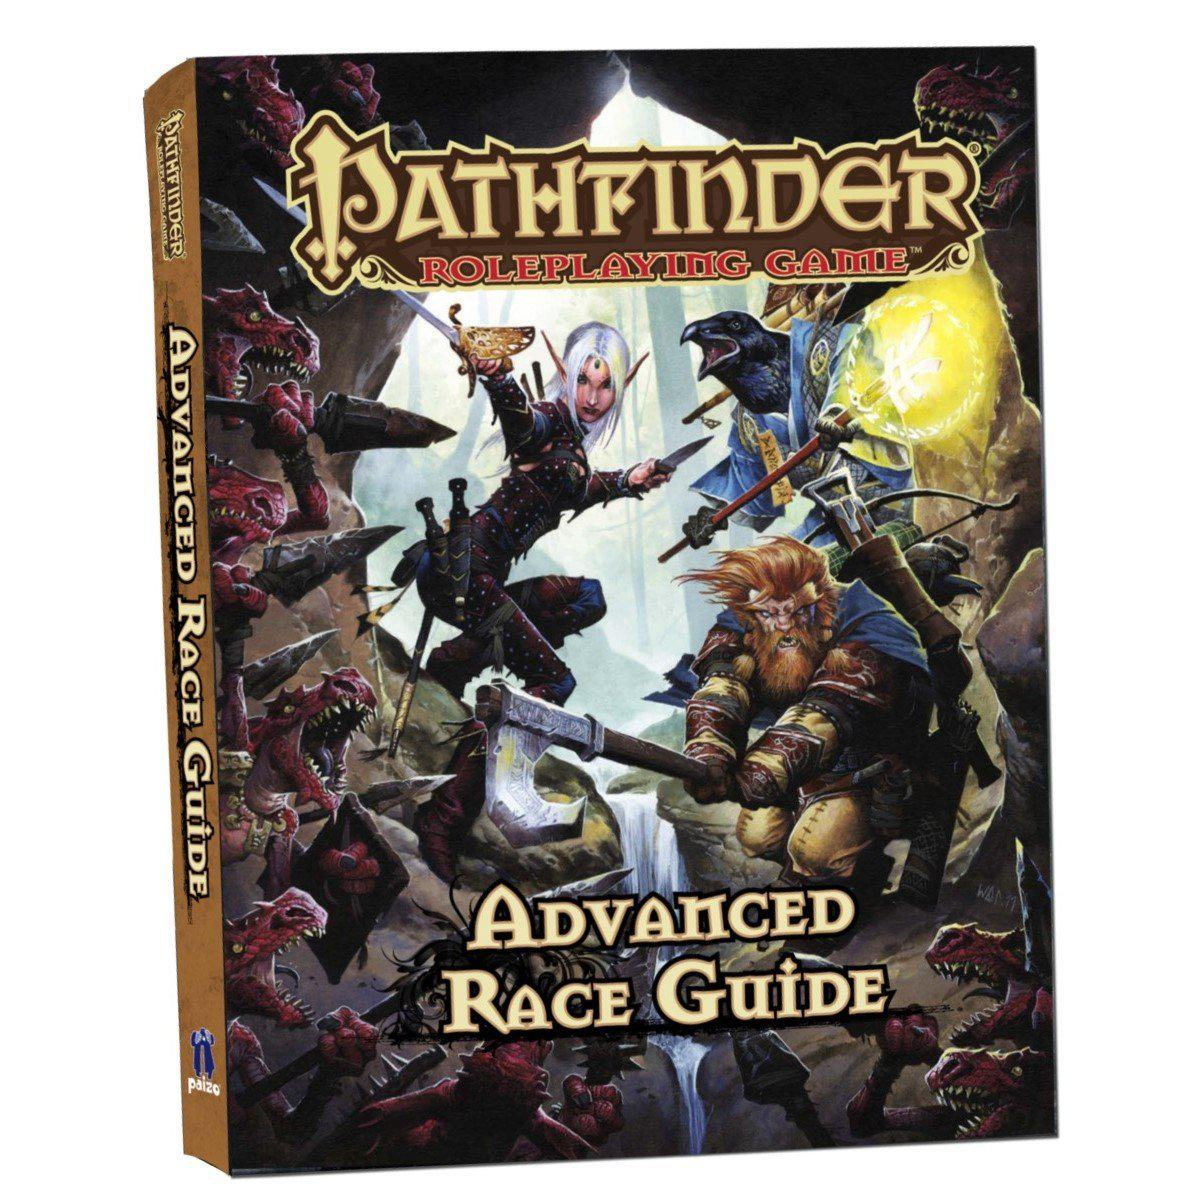 Pathfinder Roleplaying Game: Advanced Race Guide - The Sword & Board